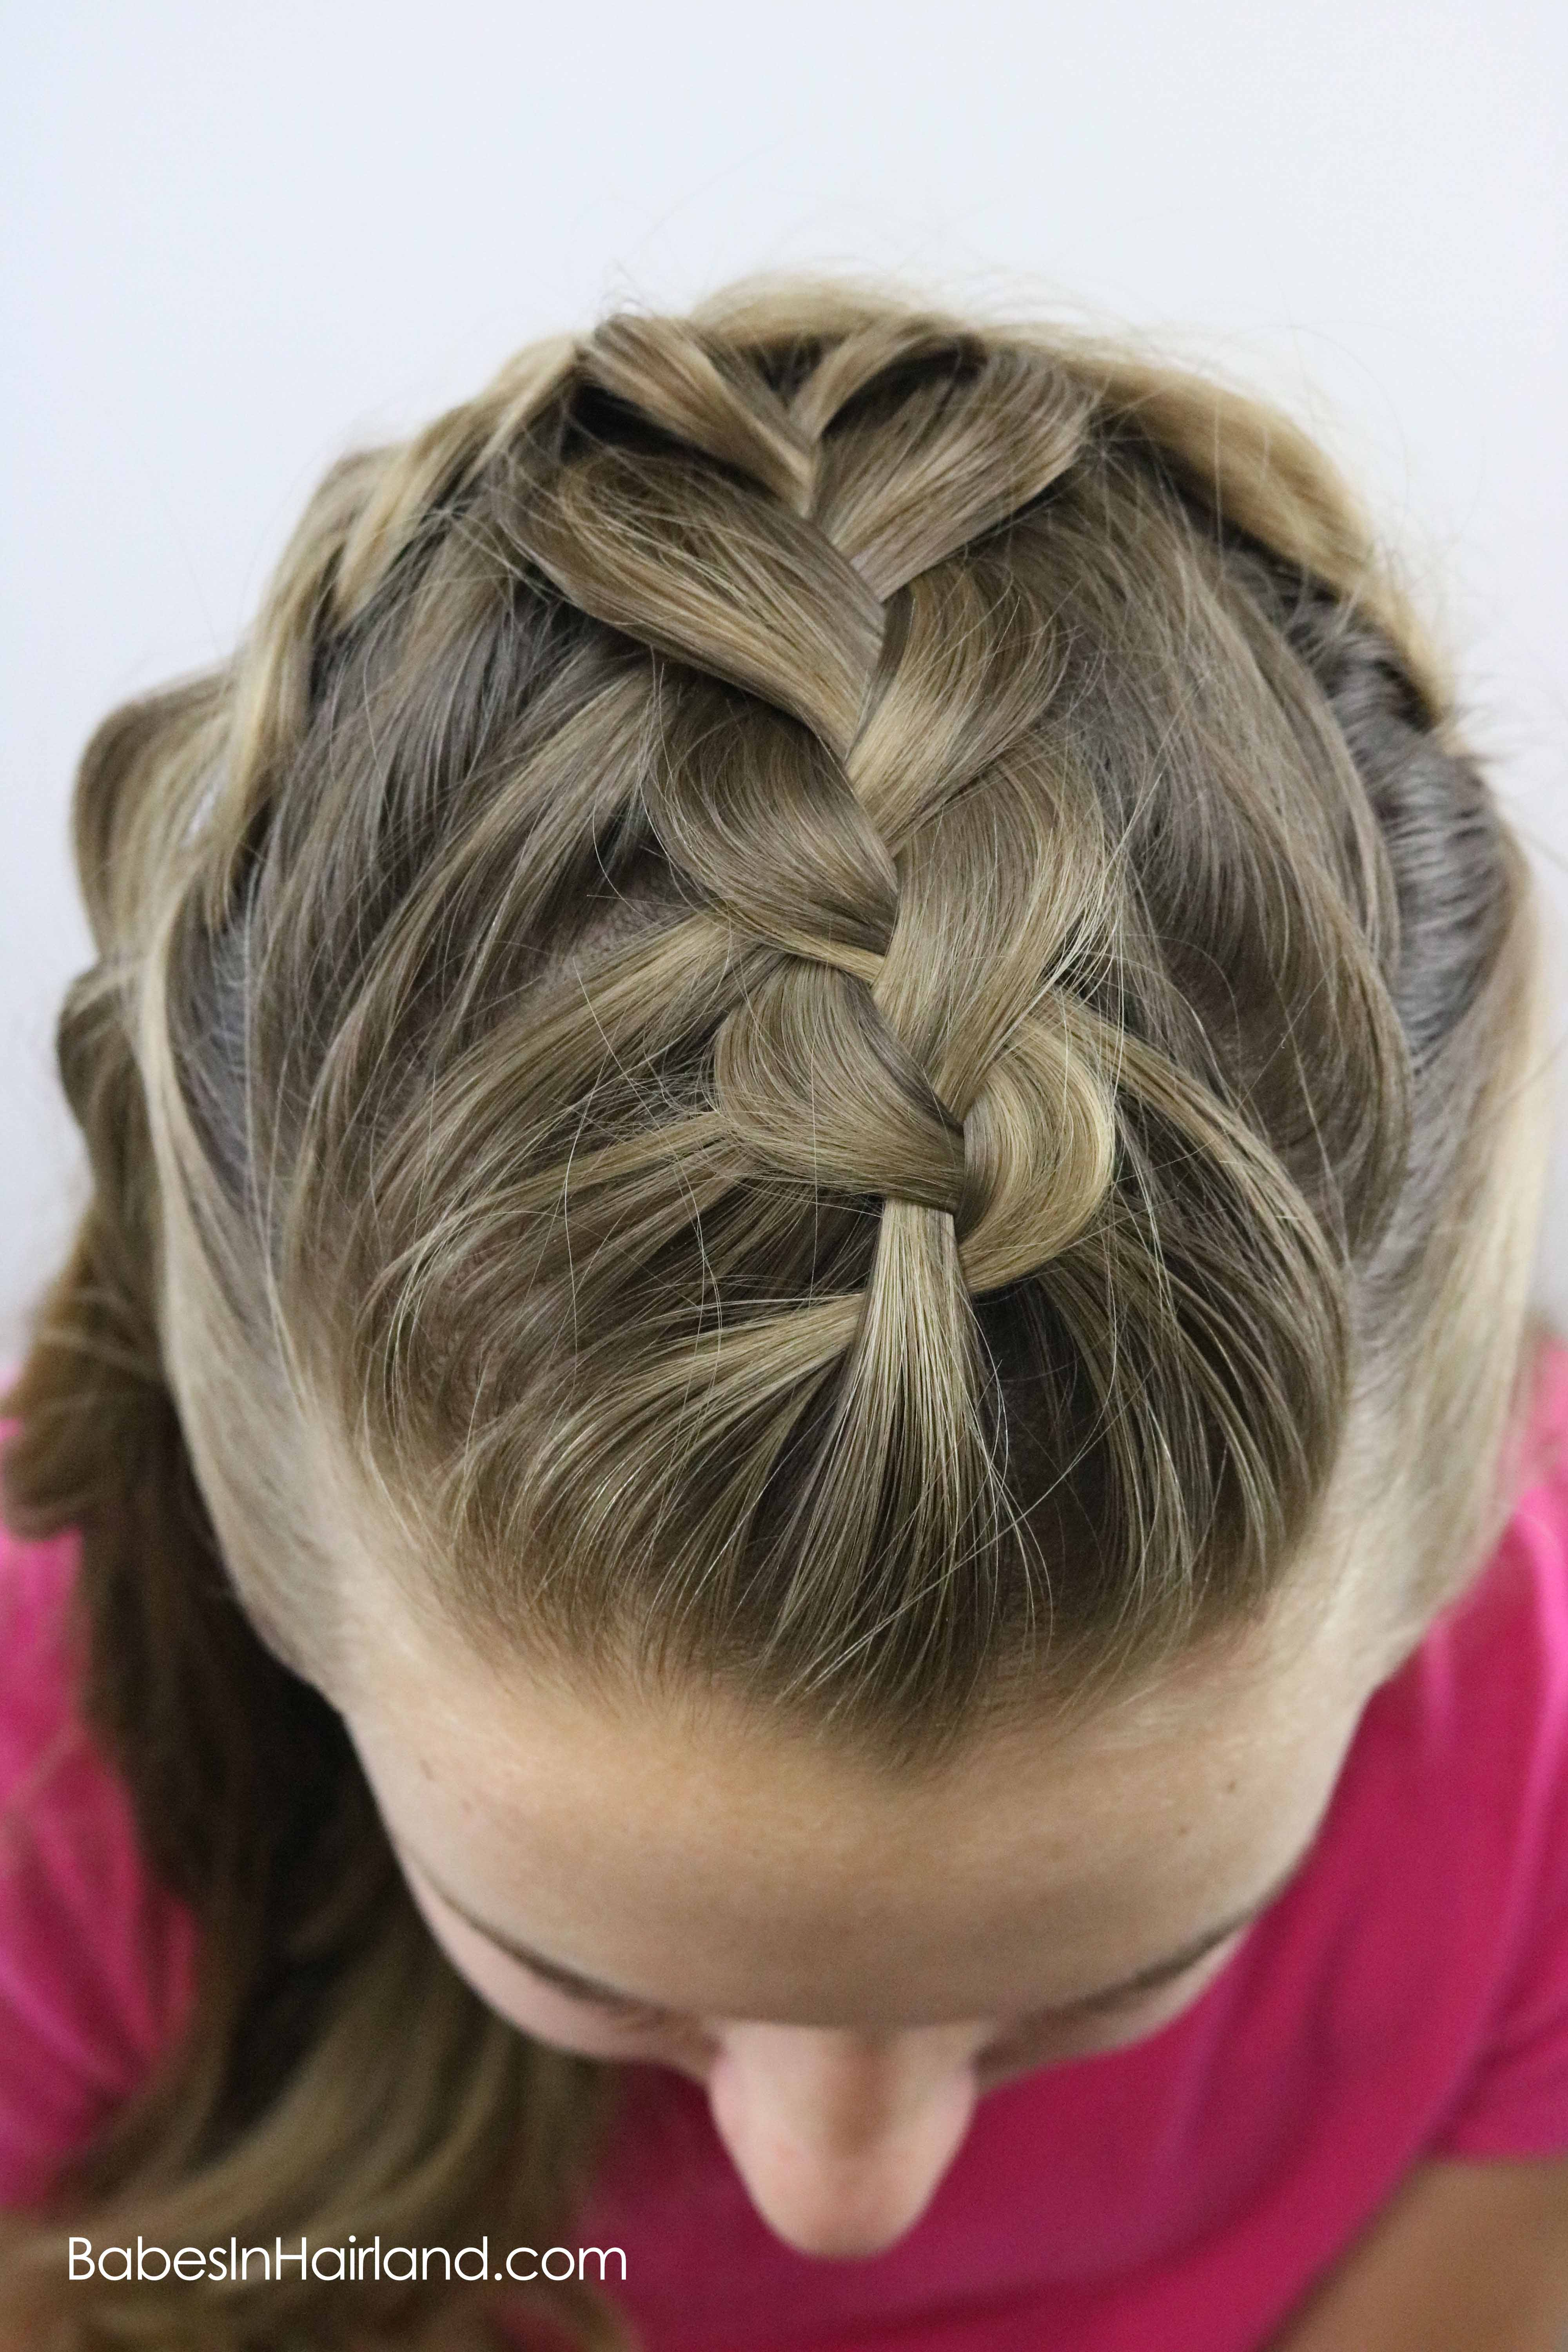 Half Up Braided Style Babes In Hairland